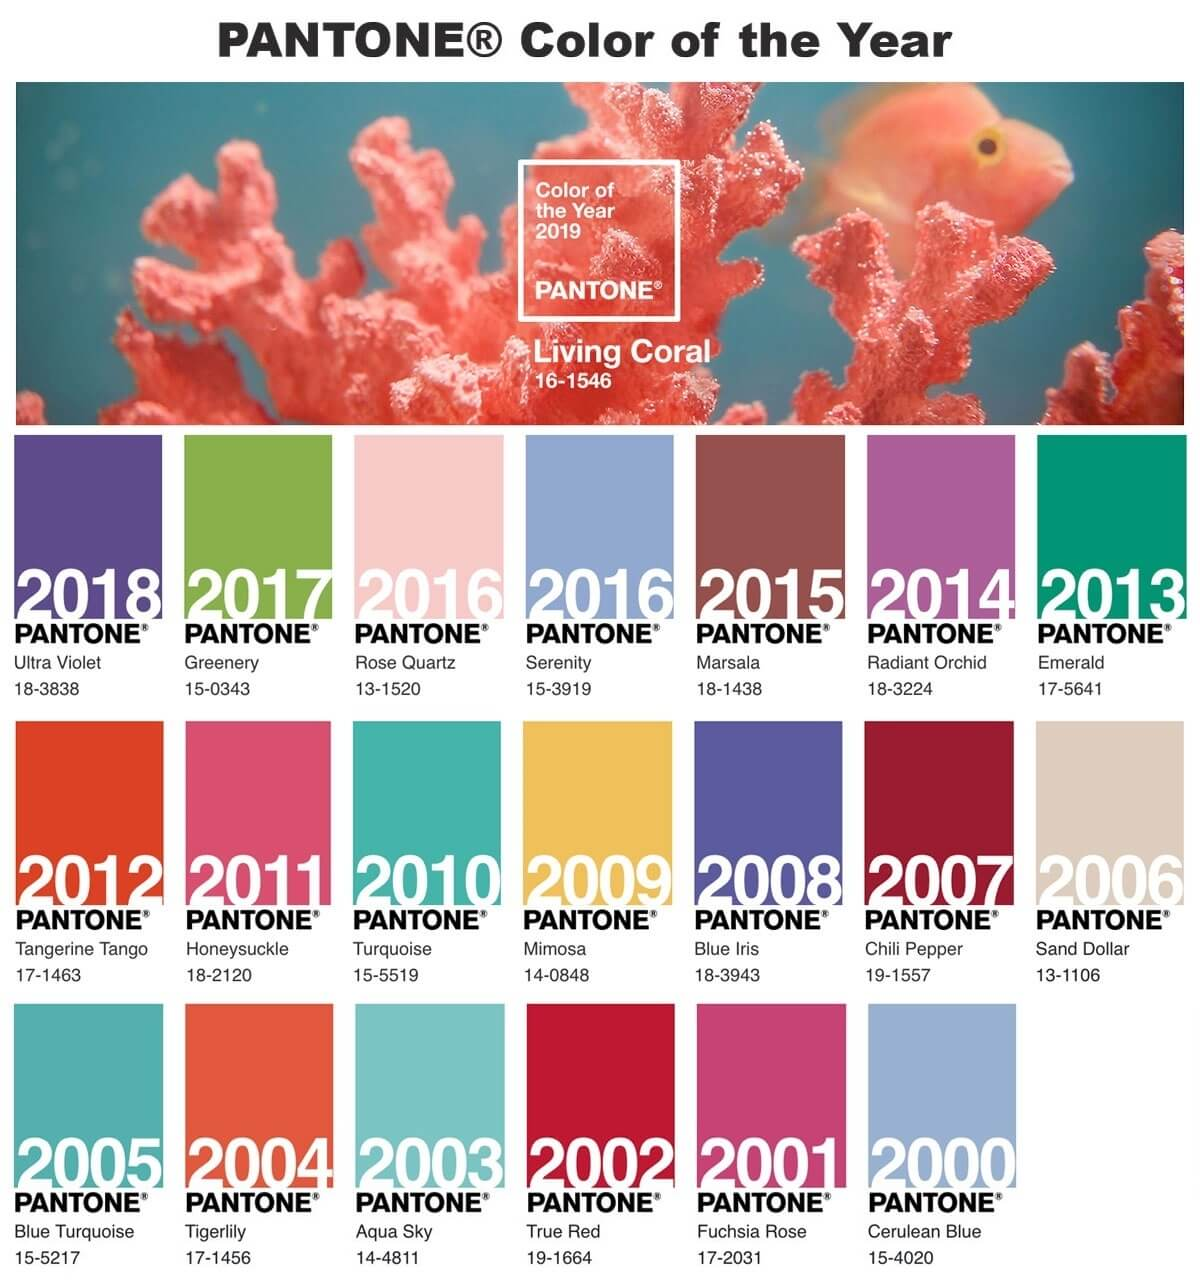 PANTON OF THE YEARS